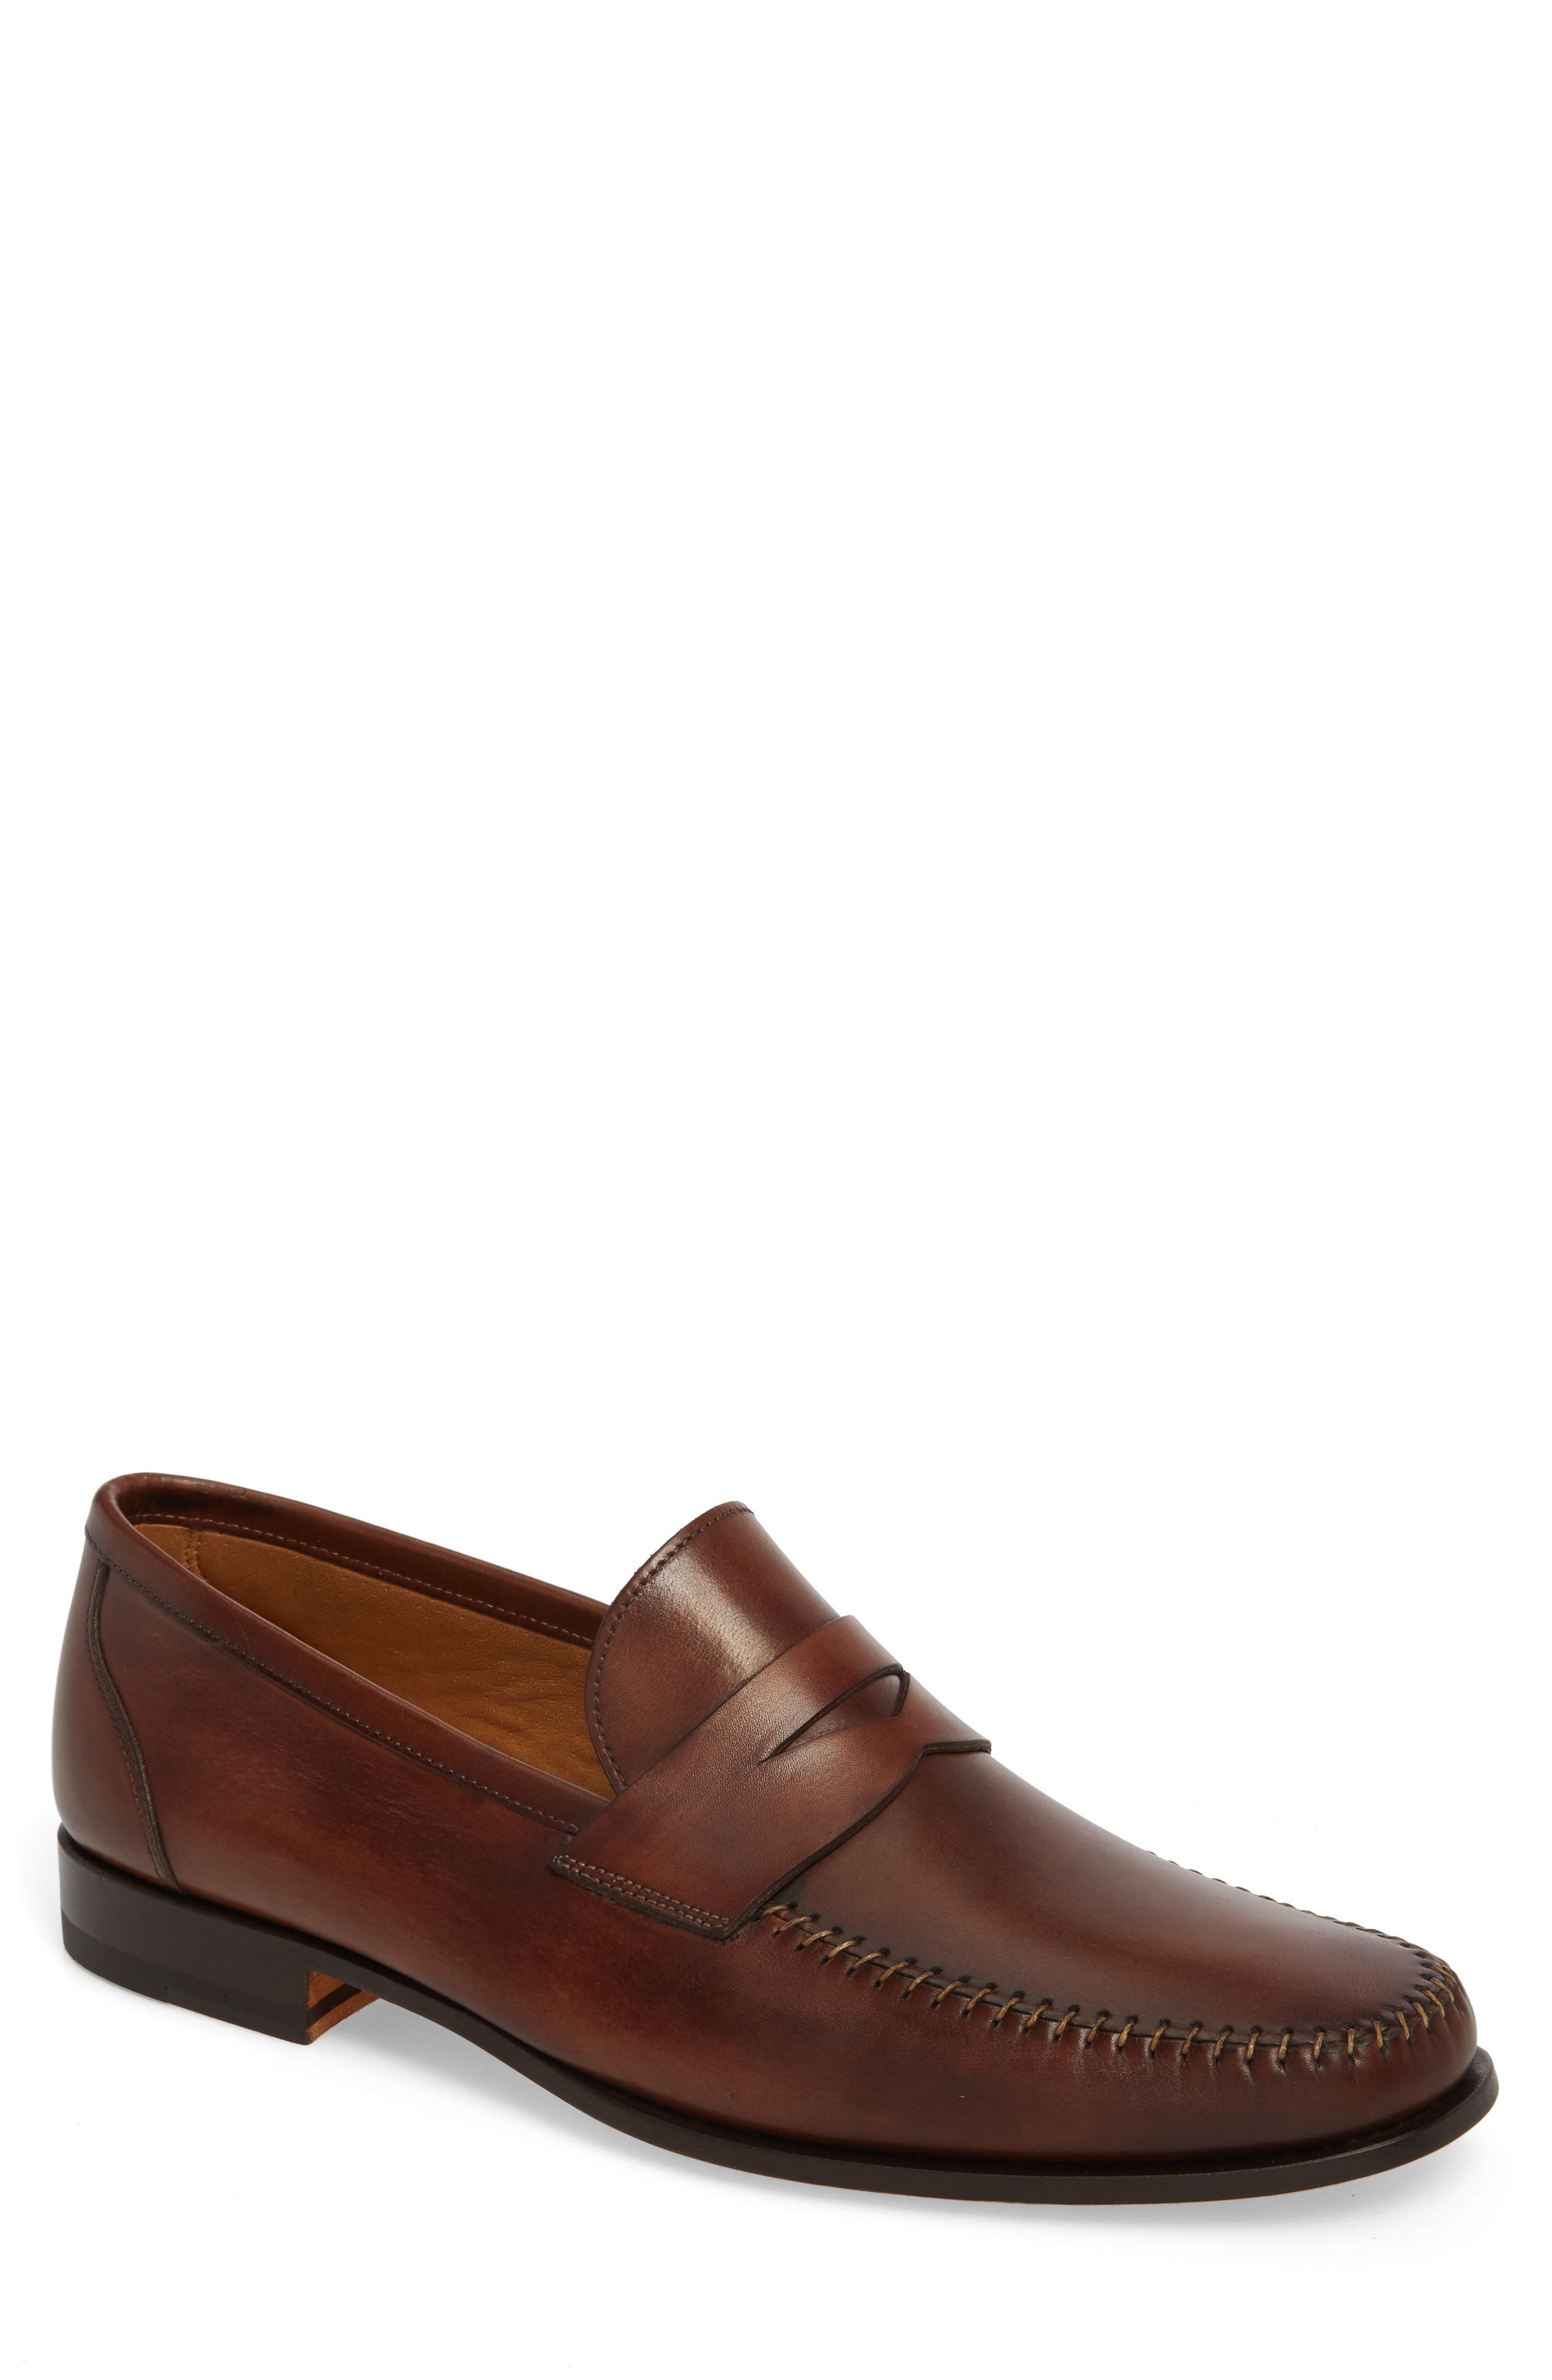 Ramos Moc Toe Penny Loafer,                             Main thumbnail 1, color,                             Brown Leather